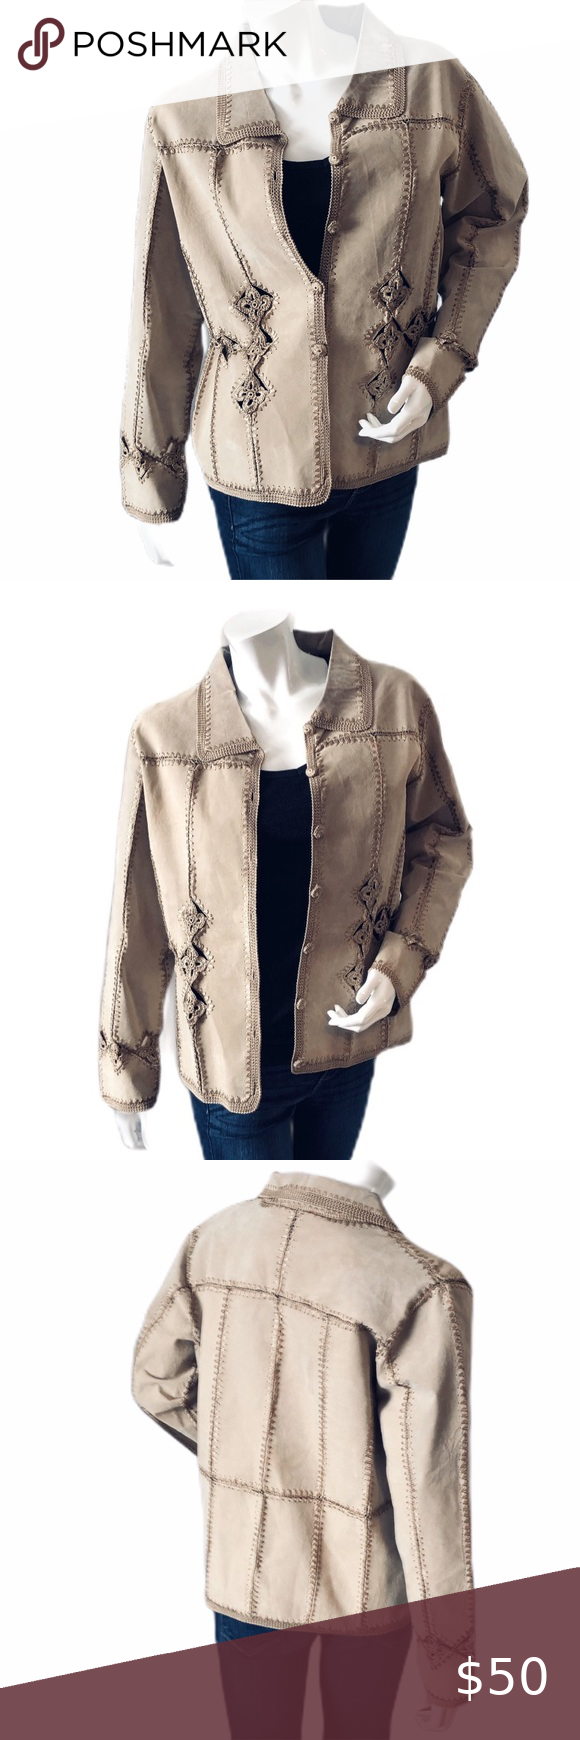 Carducci Leather and Embroidered Jacket Size Med in 2020